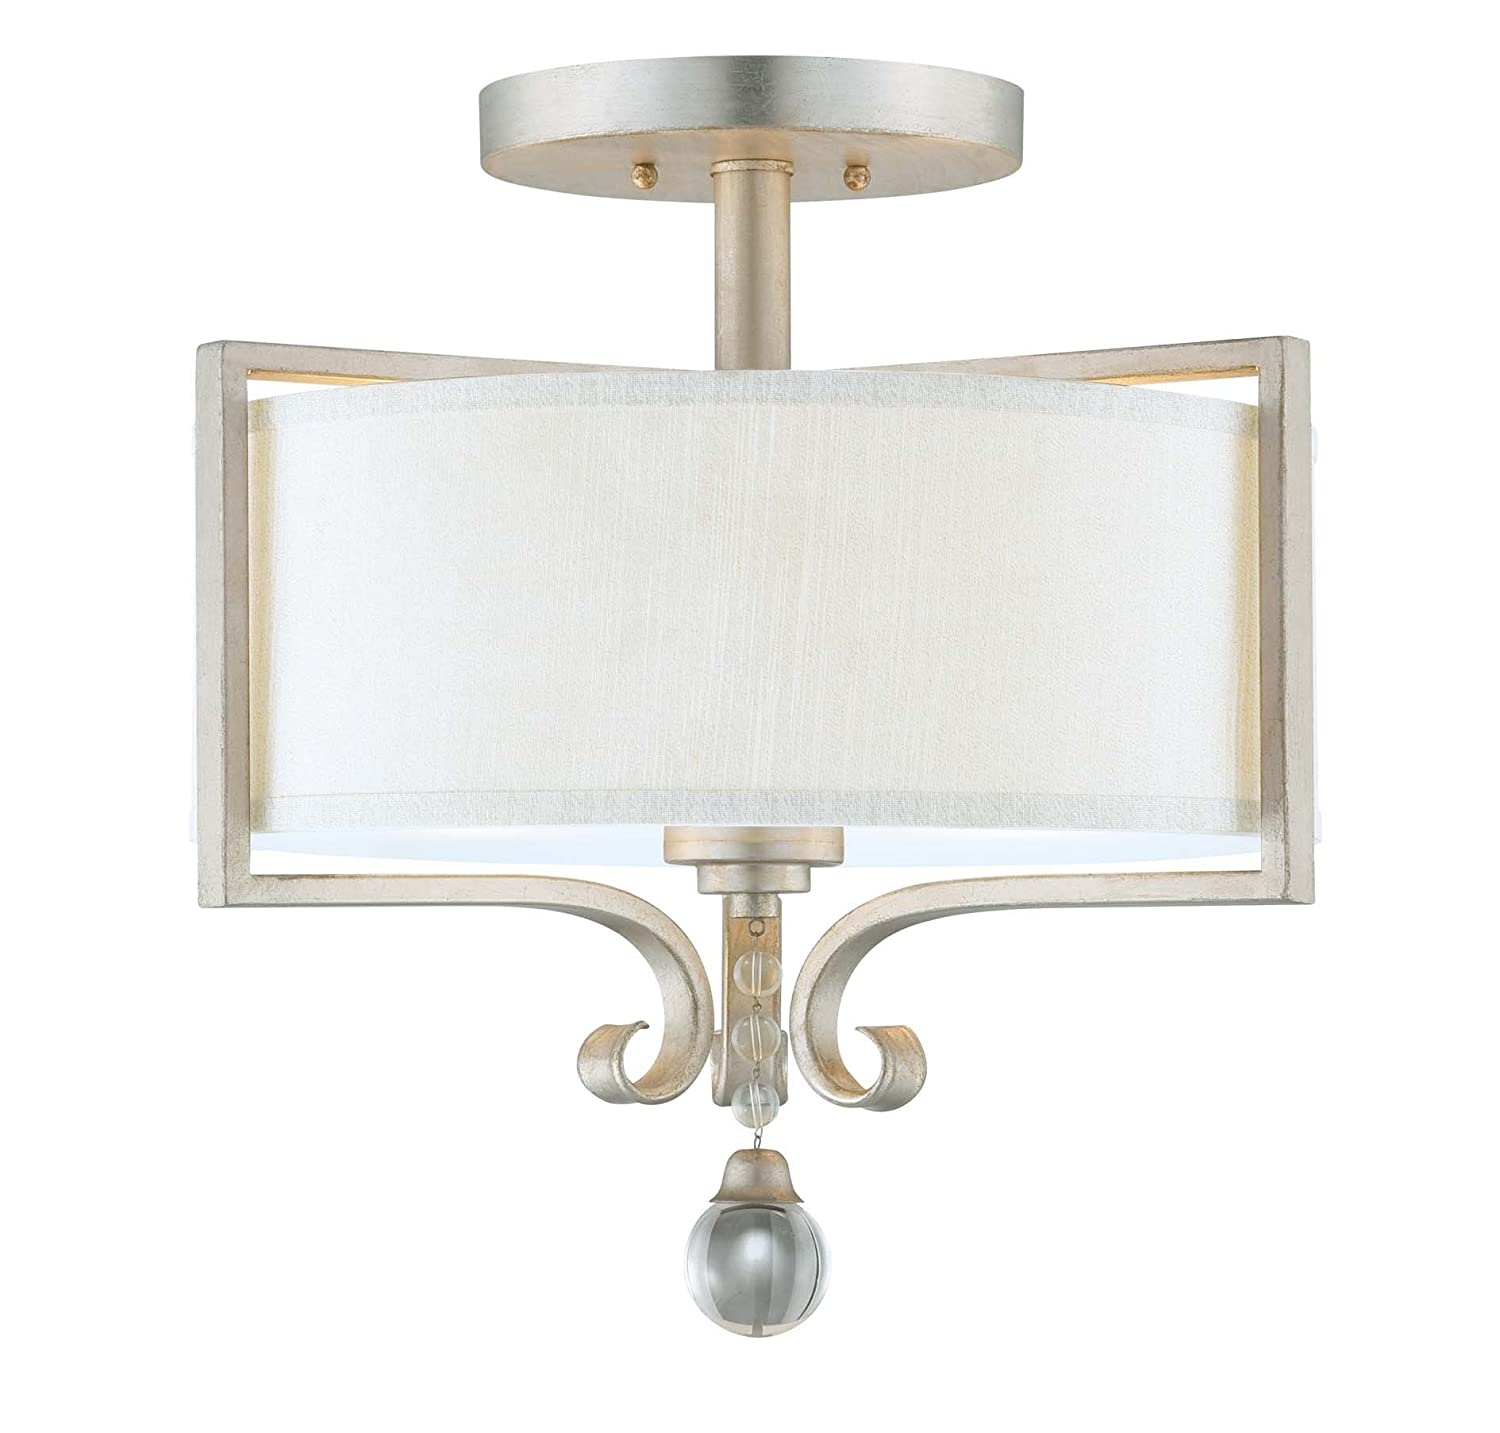 Savoy house 6 258 2 307 rosendal 2 light semi flush silver savoy house 6 258 2 307 rosendal 2 light semi flush silver sparkle close to ceiling light fixtures amazon arubaitofo Image collections